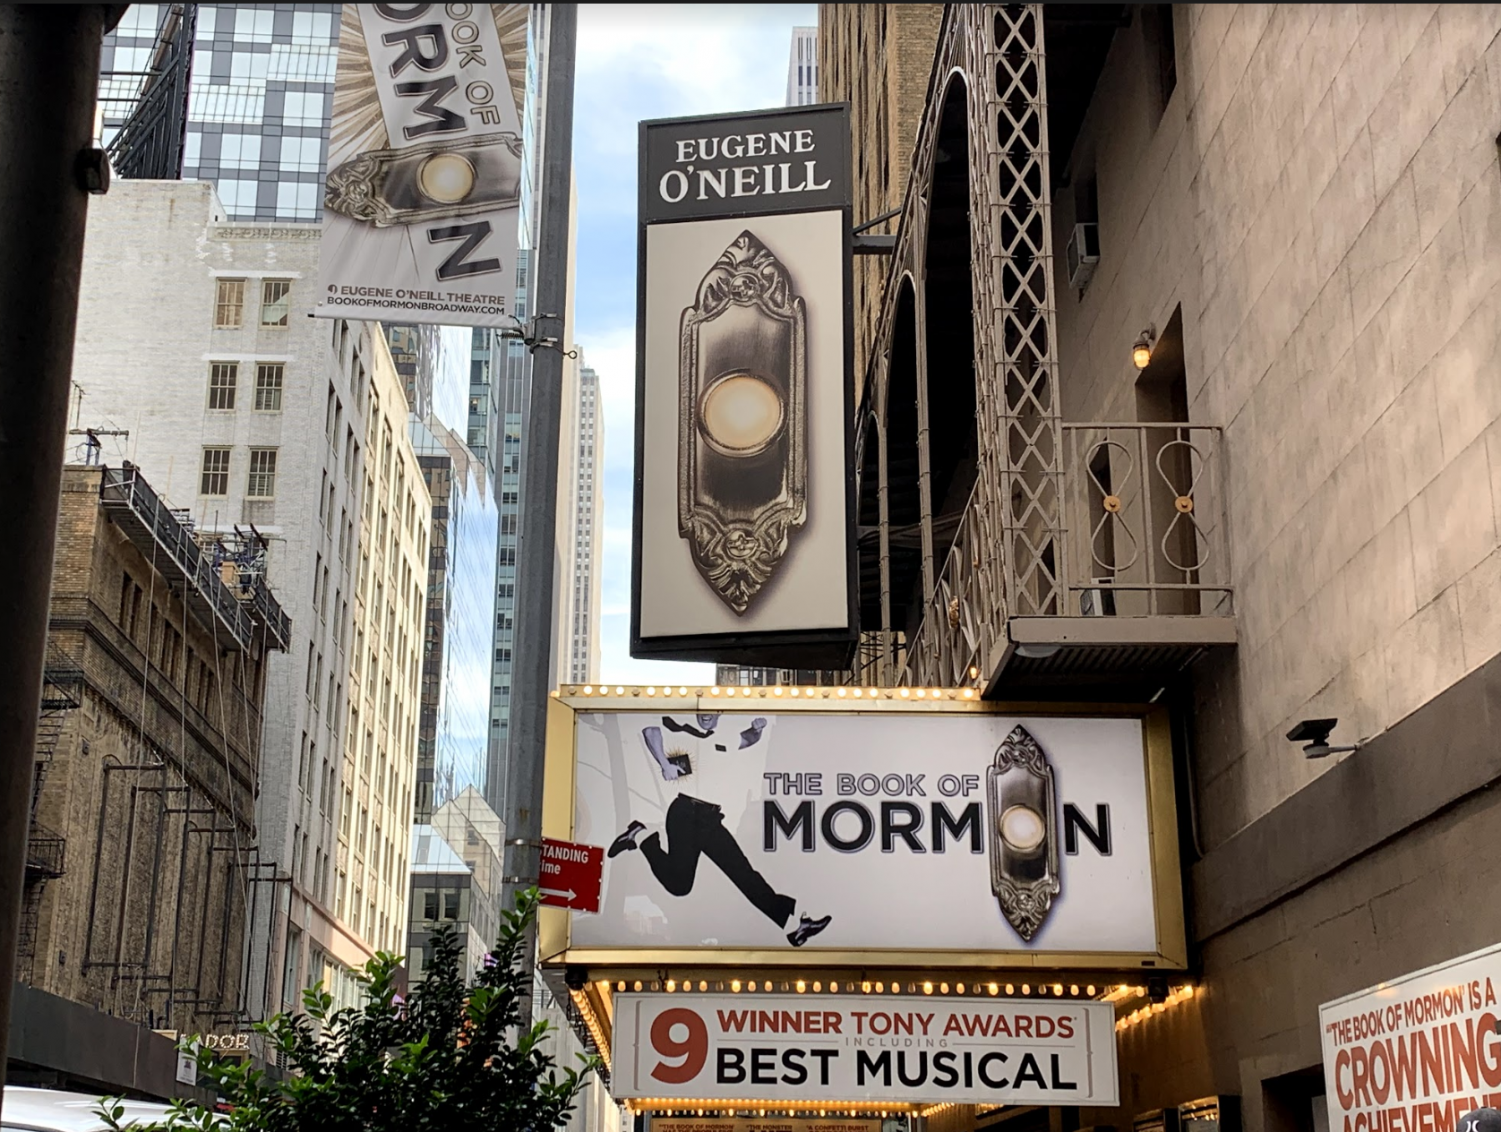 A photo of the outside of the Book of Mormon theater.